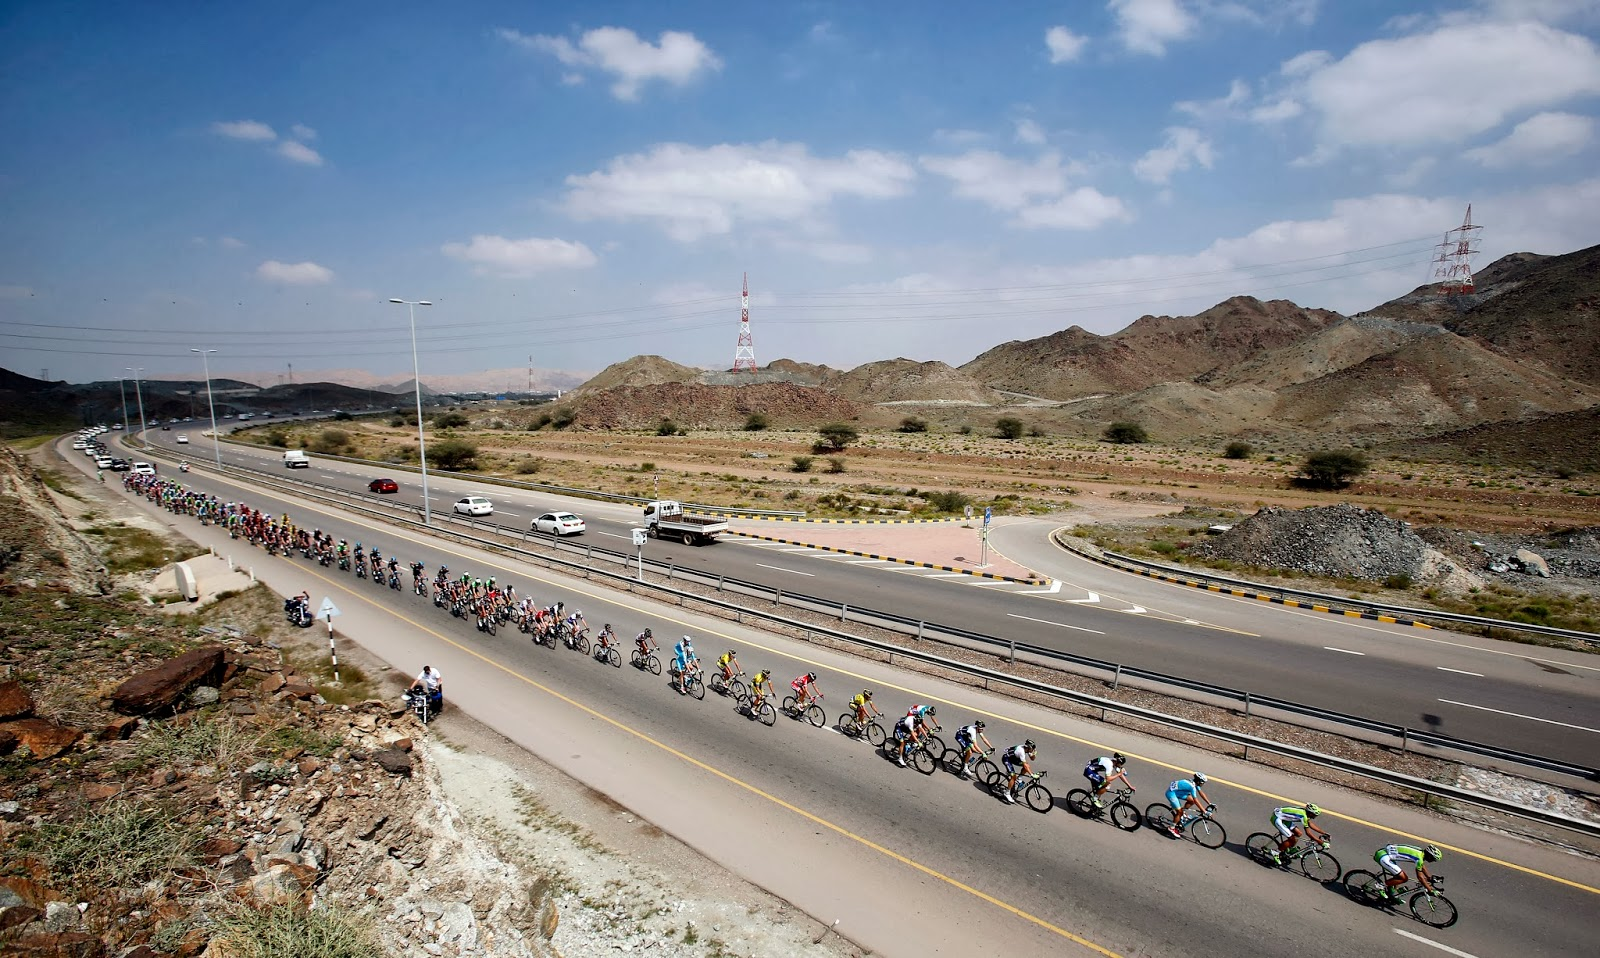 Al-Bustan, Andre Greipel, Australia, Belgium, Cycling, Cycling Race, Germany, Howard Leigh, Muscat, Oman, Sports, Stage 3, Tour of Oman, Tour of Oman 2014, Van Hecke Preben,